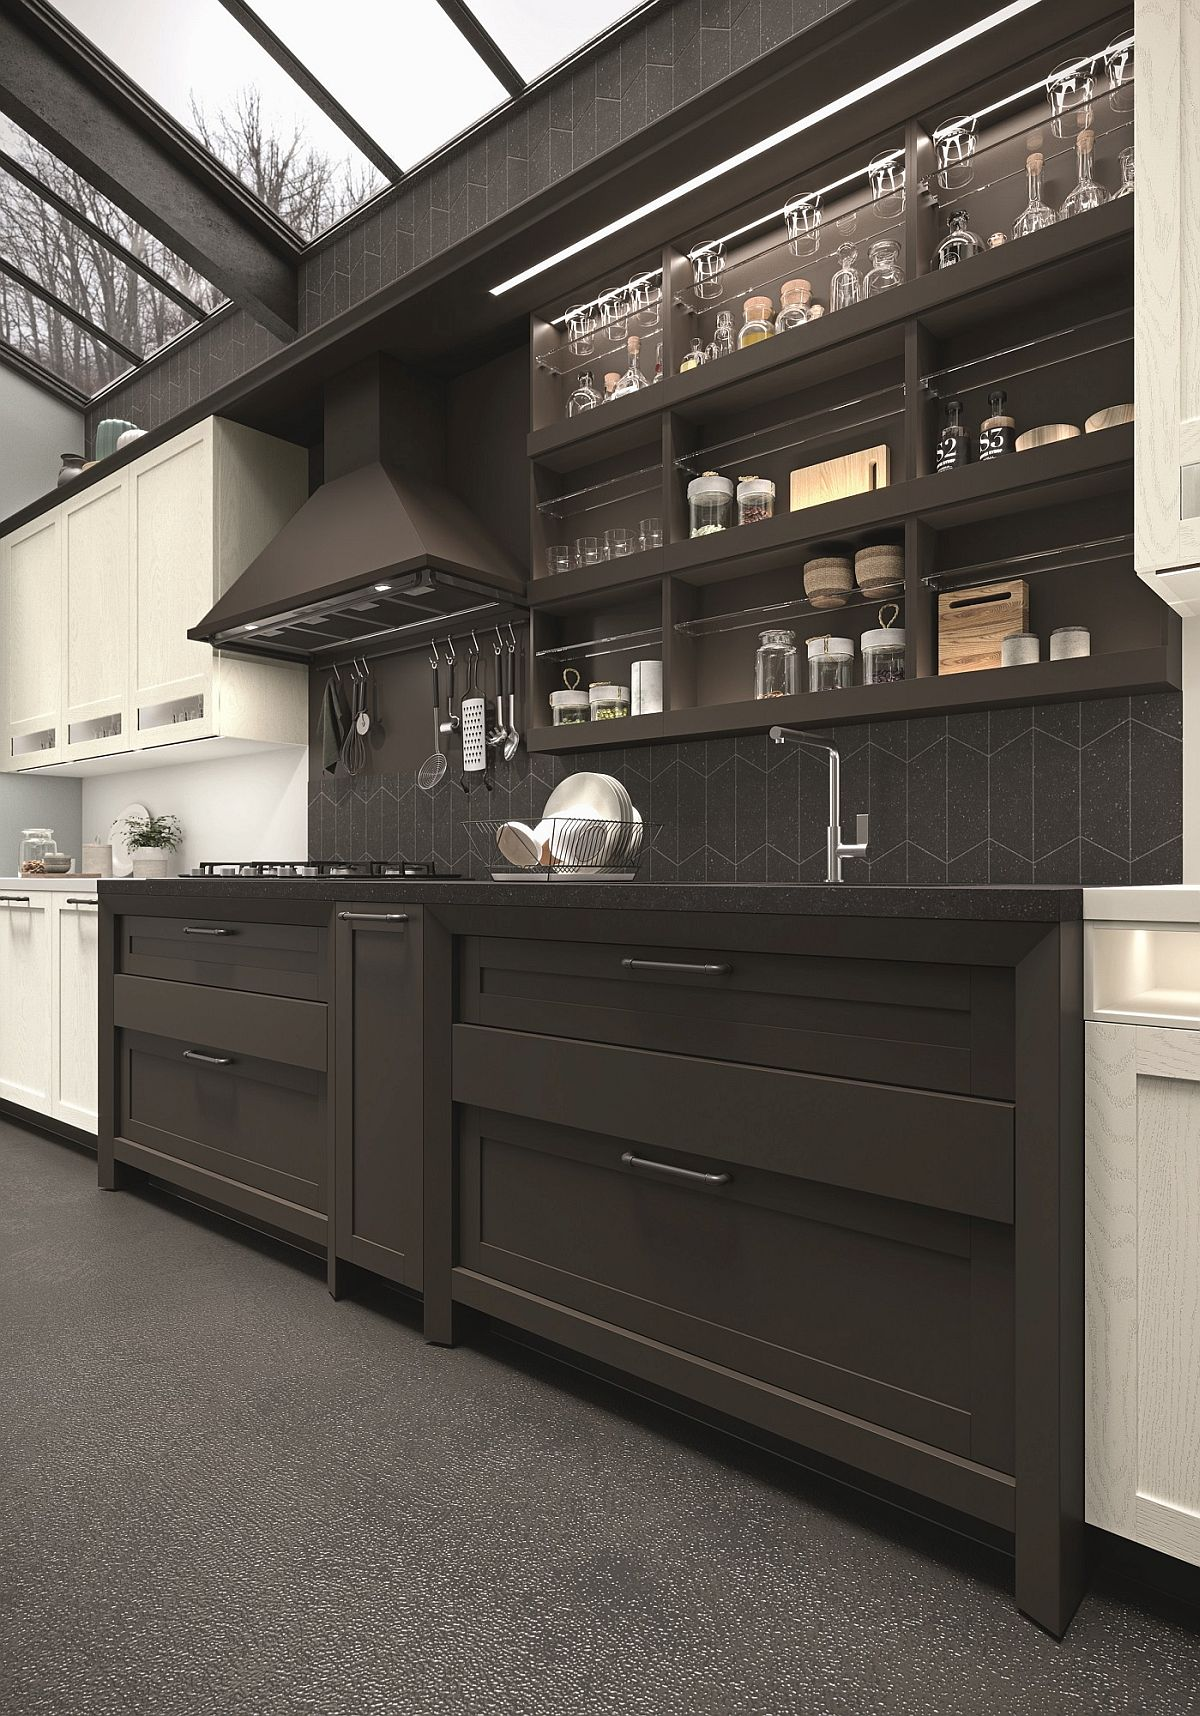 Modern-kitchen-with-English-country-charm-and-Scandinavian-simplicity